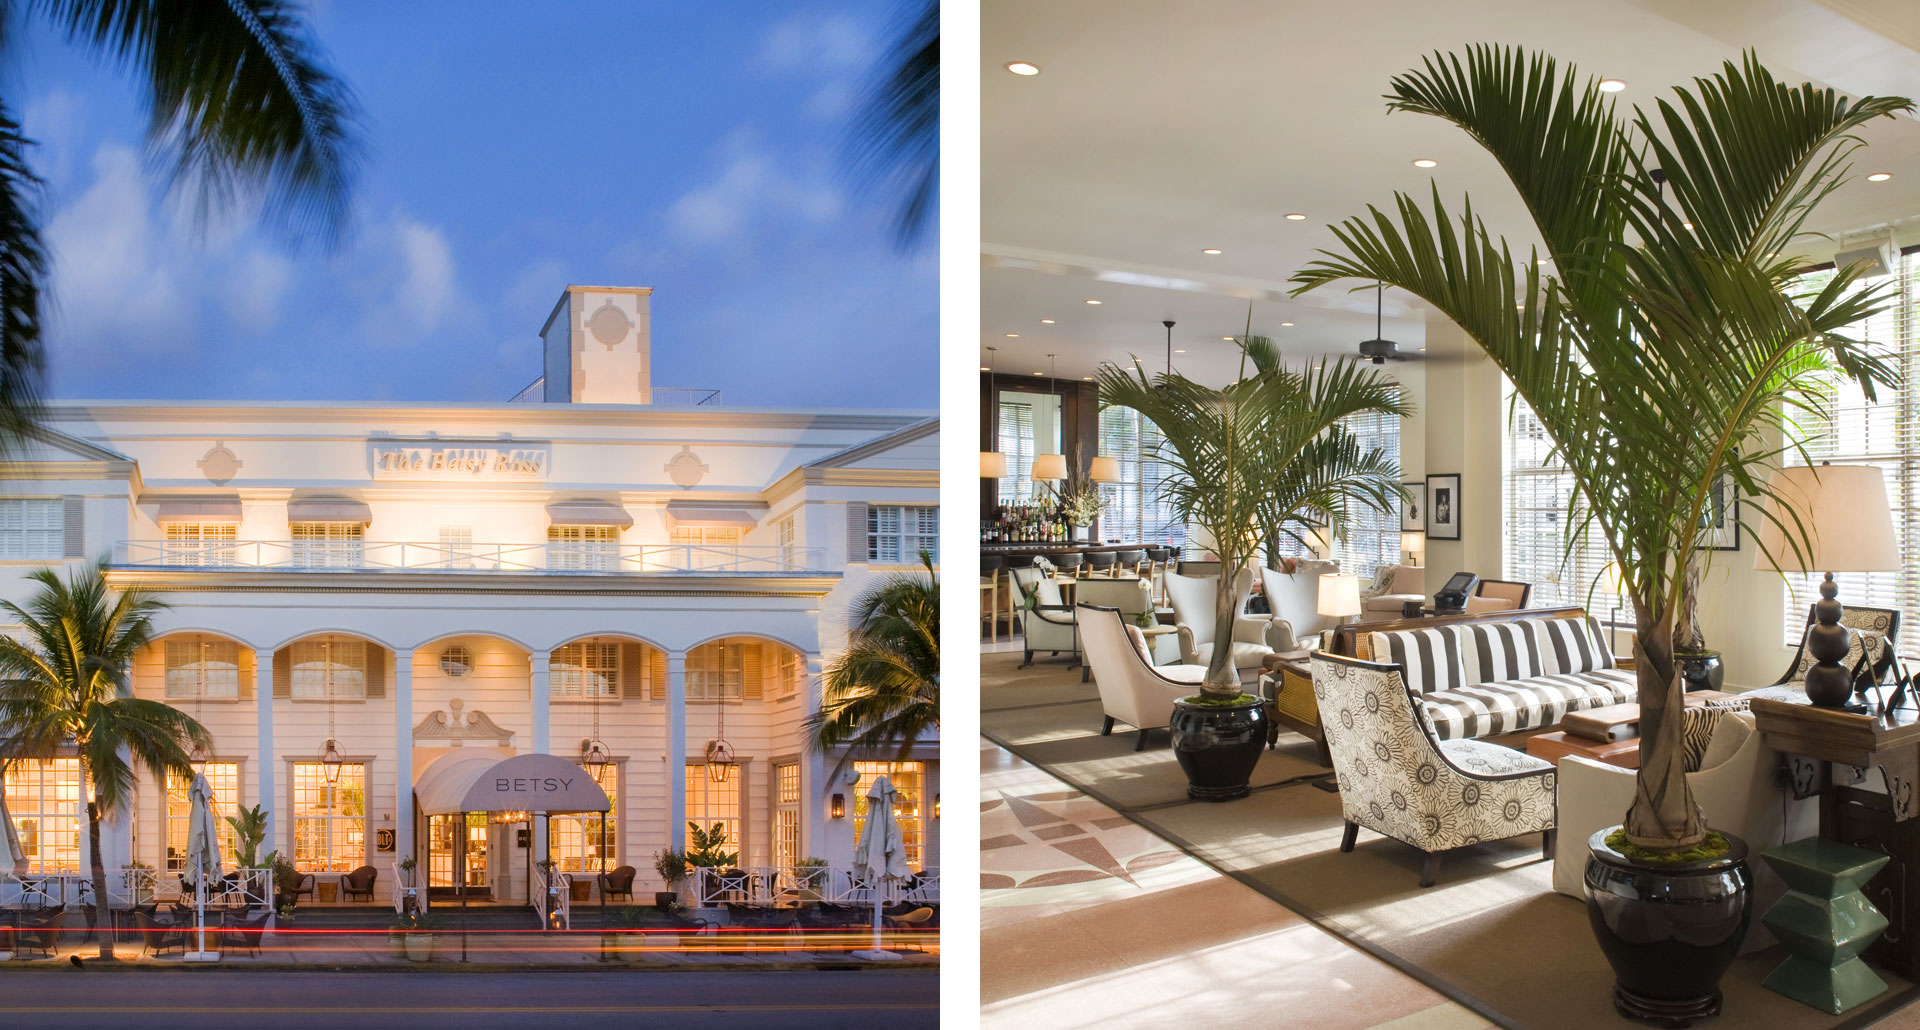 The Betsy - South Beach - boutique hotel in Miami